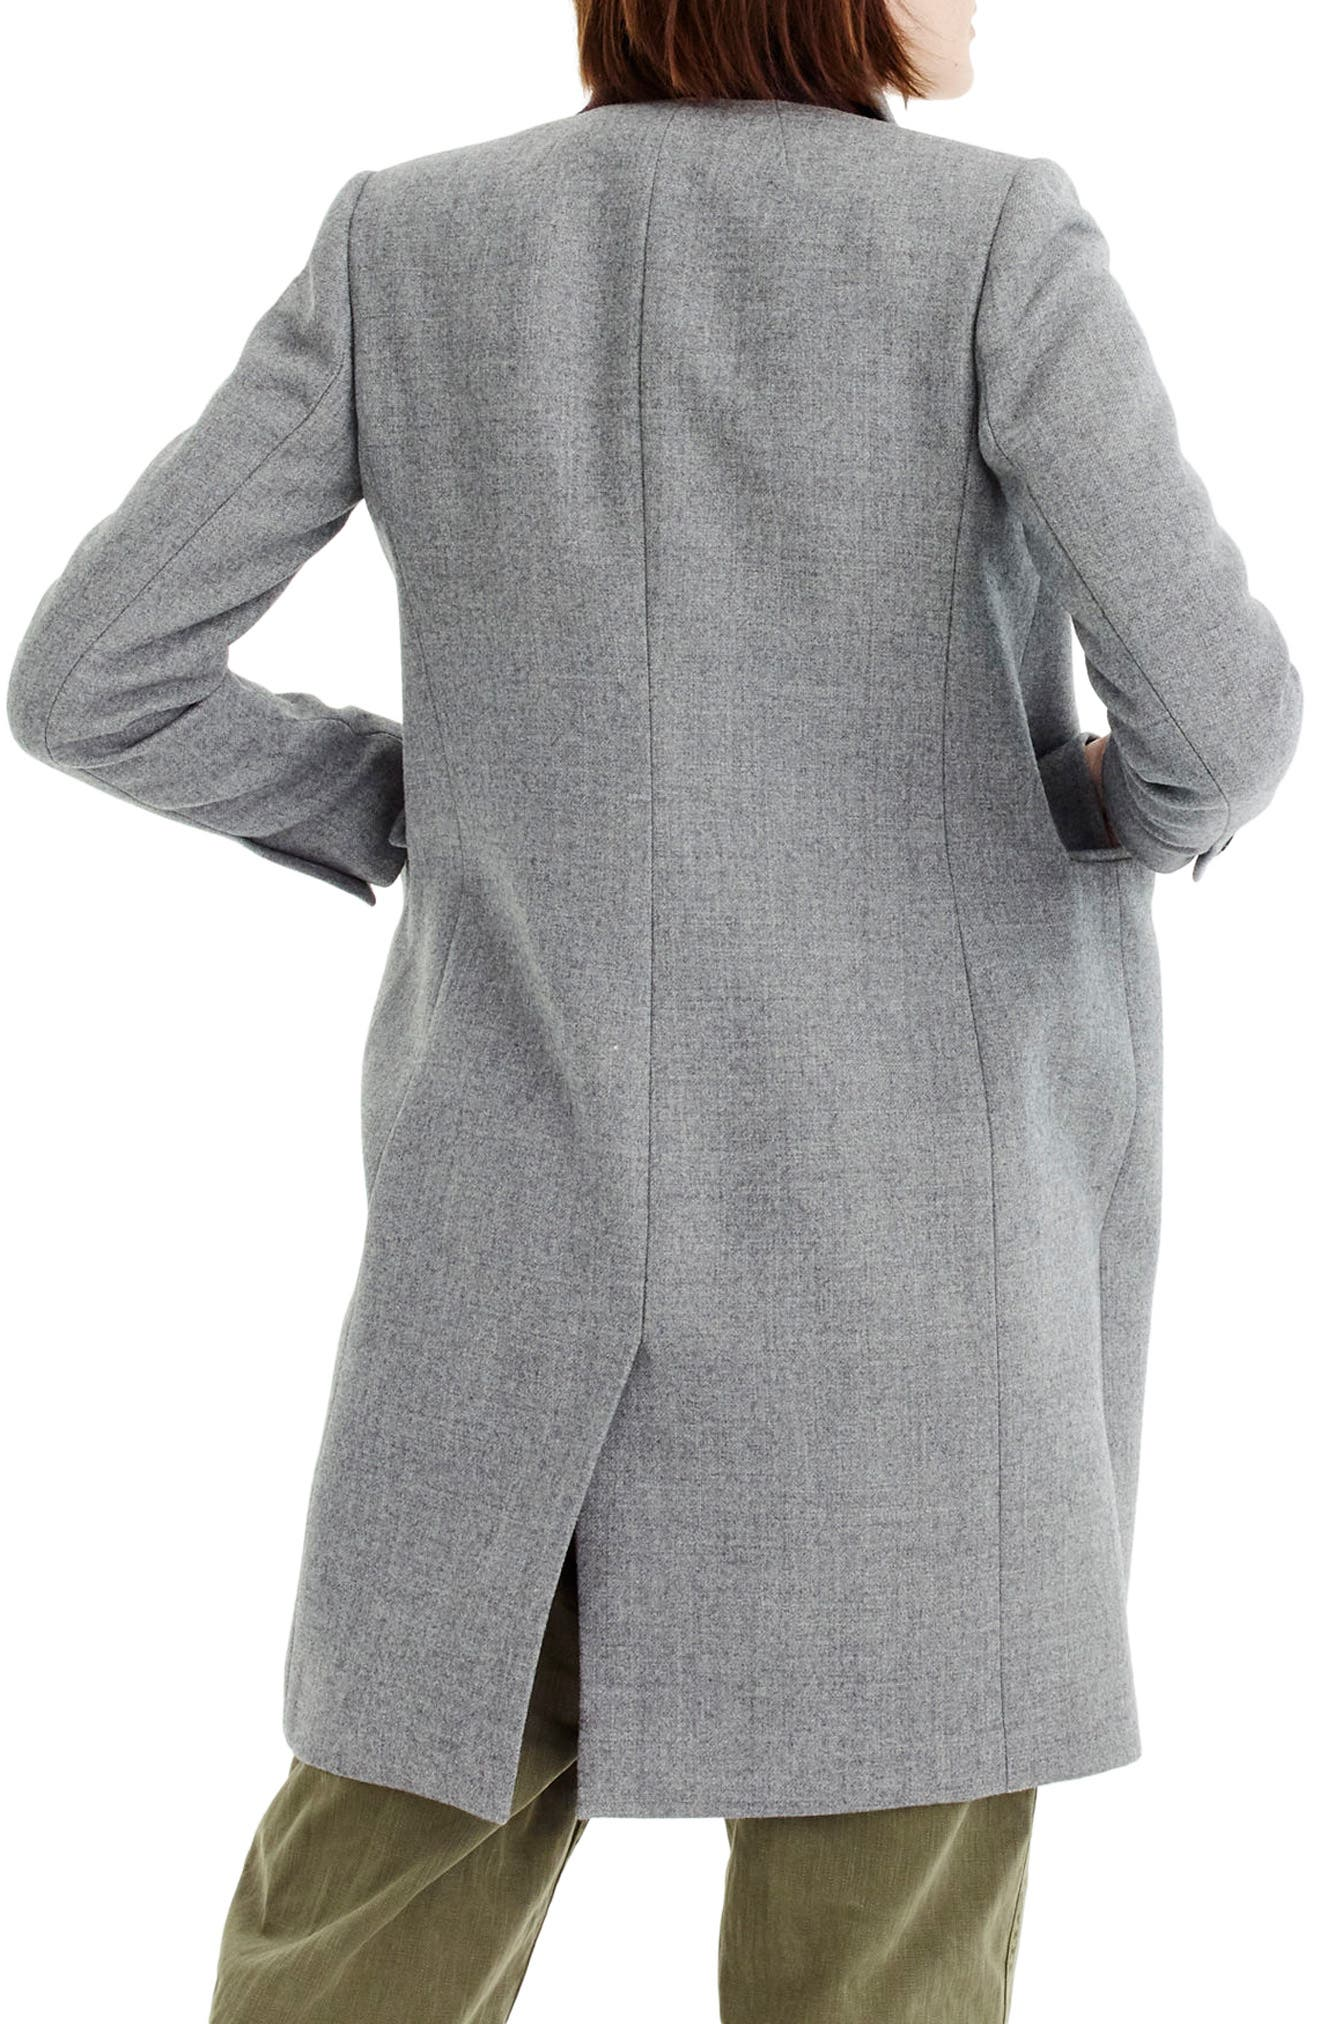 Alternate Image 2  - J.Crew Eniko Wool Topcoat